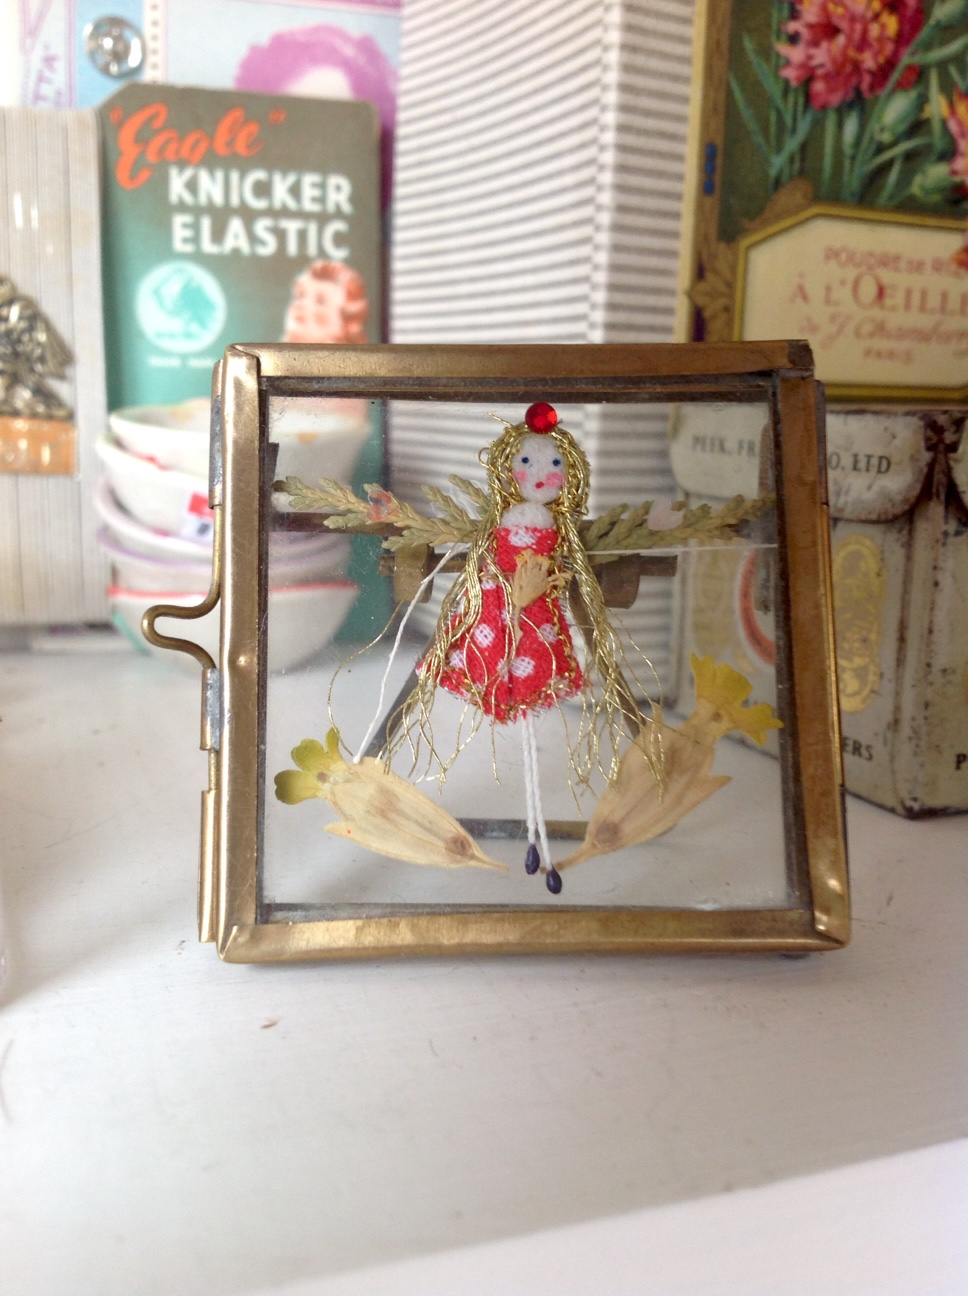 5cm square brass frame with stand. Polka dot fairy with dried cowslips and cypress. £14 plus £1 p&p.